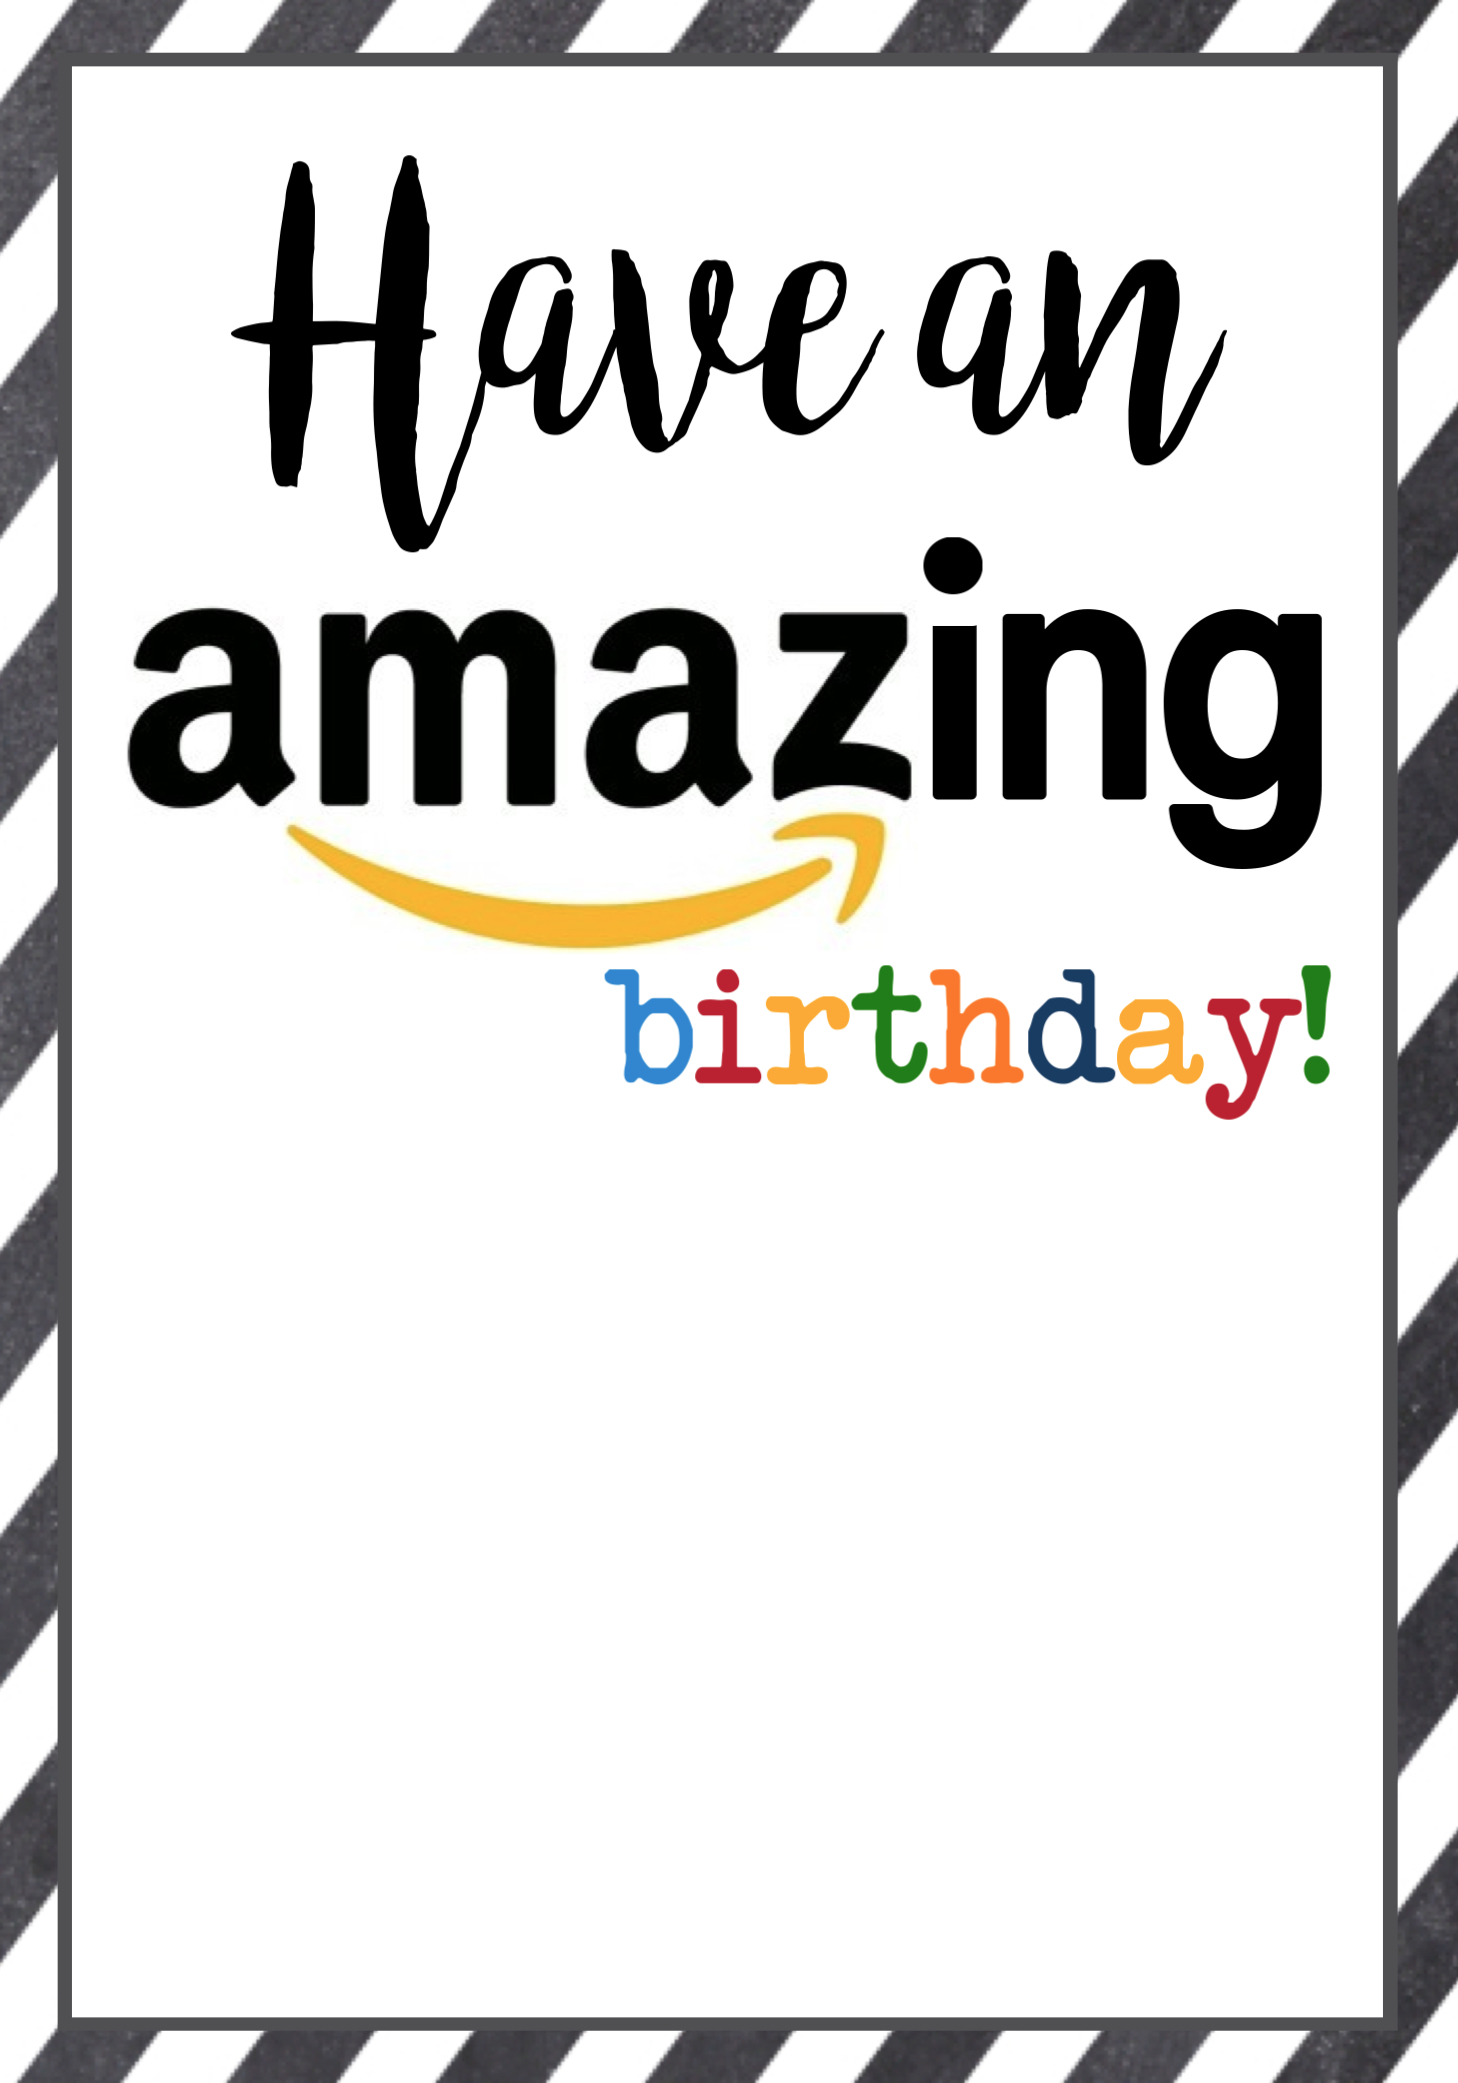 You Can Print The Amazon Birthday Gift Cards On Back